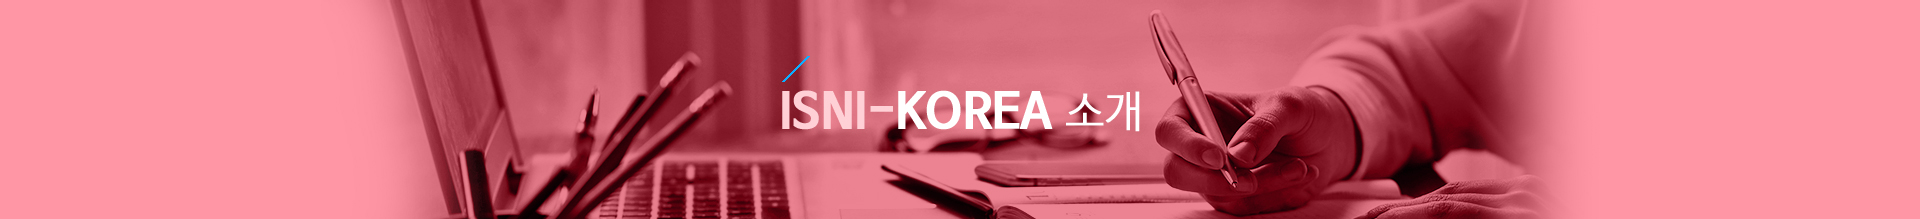 ABOUT ISNI KOREA